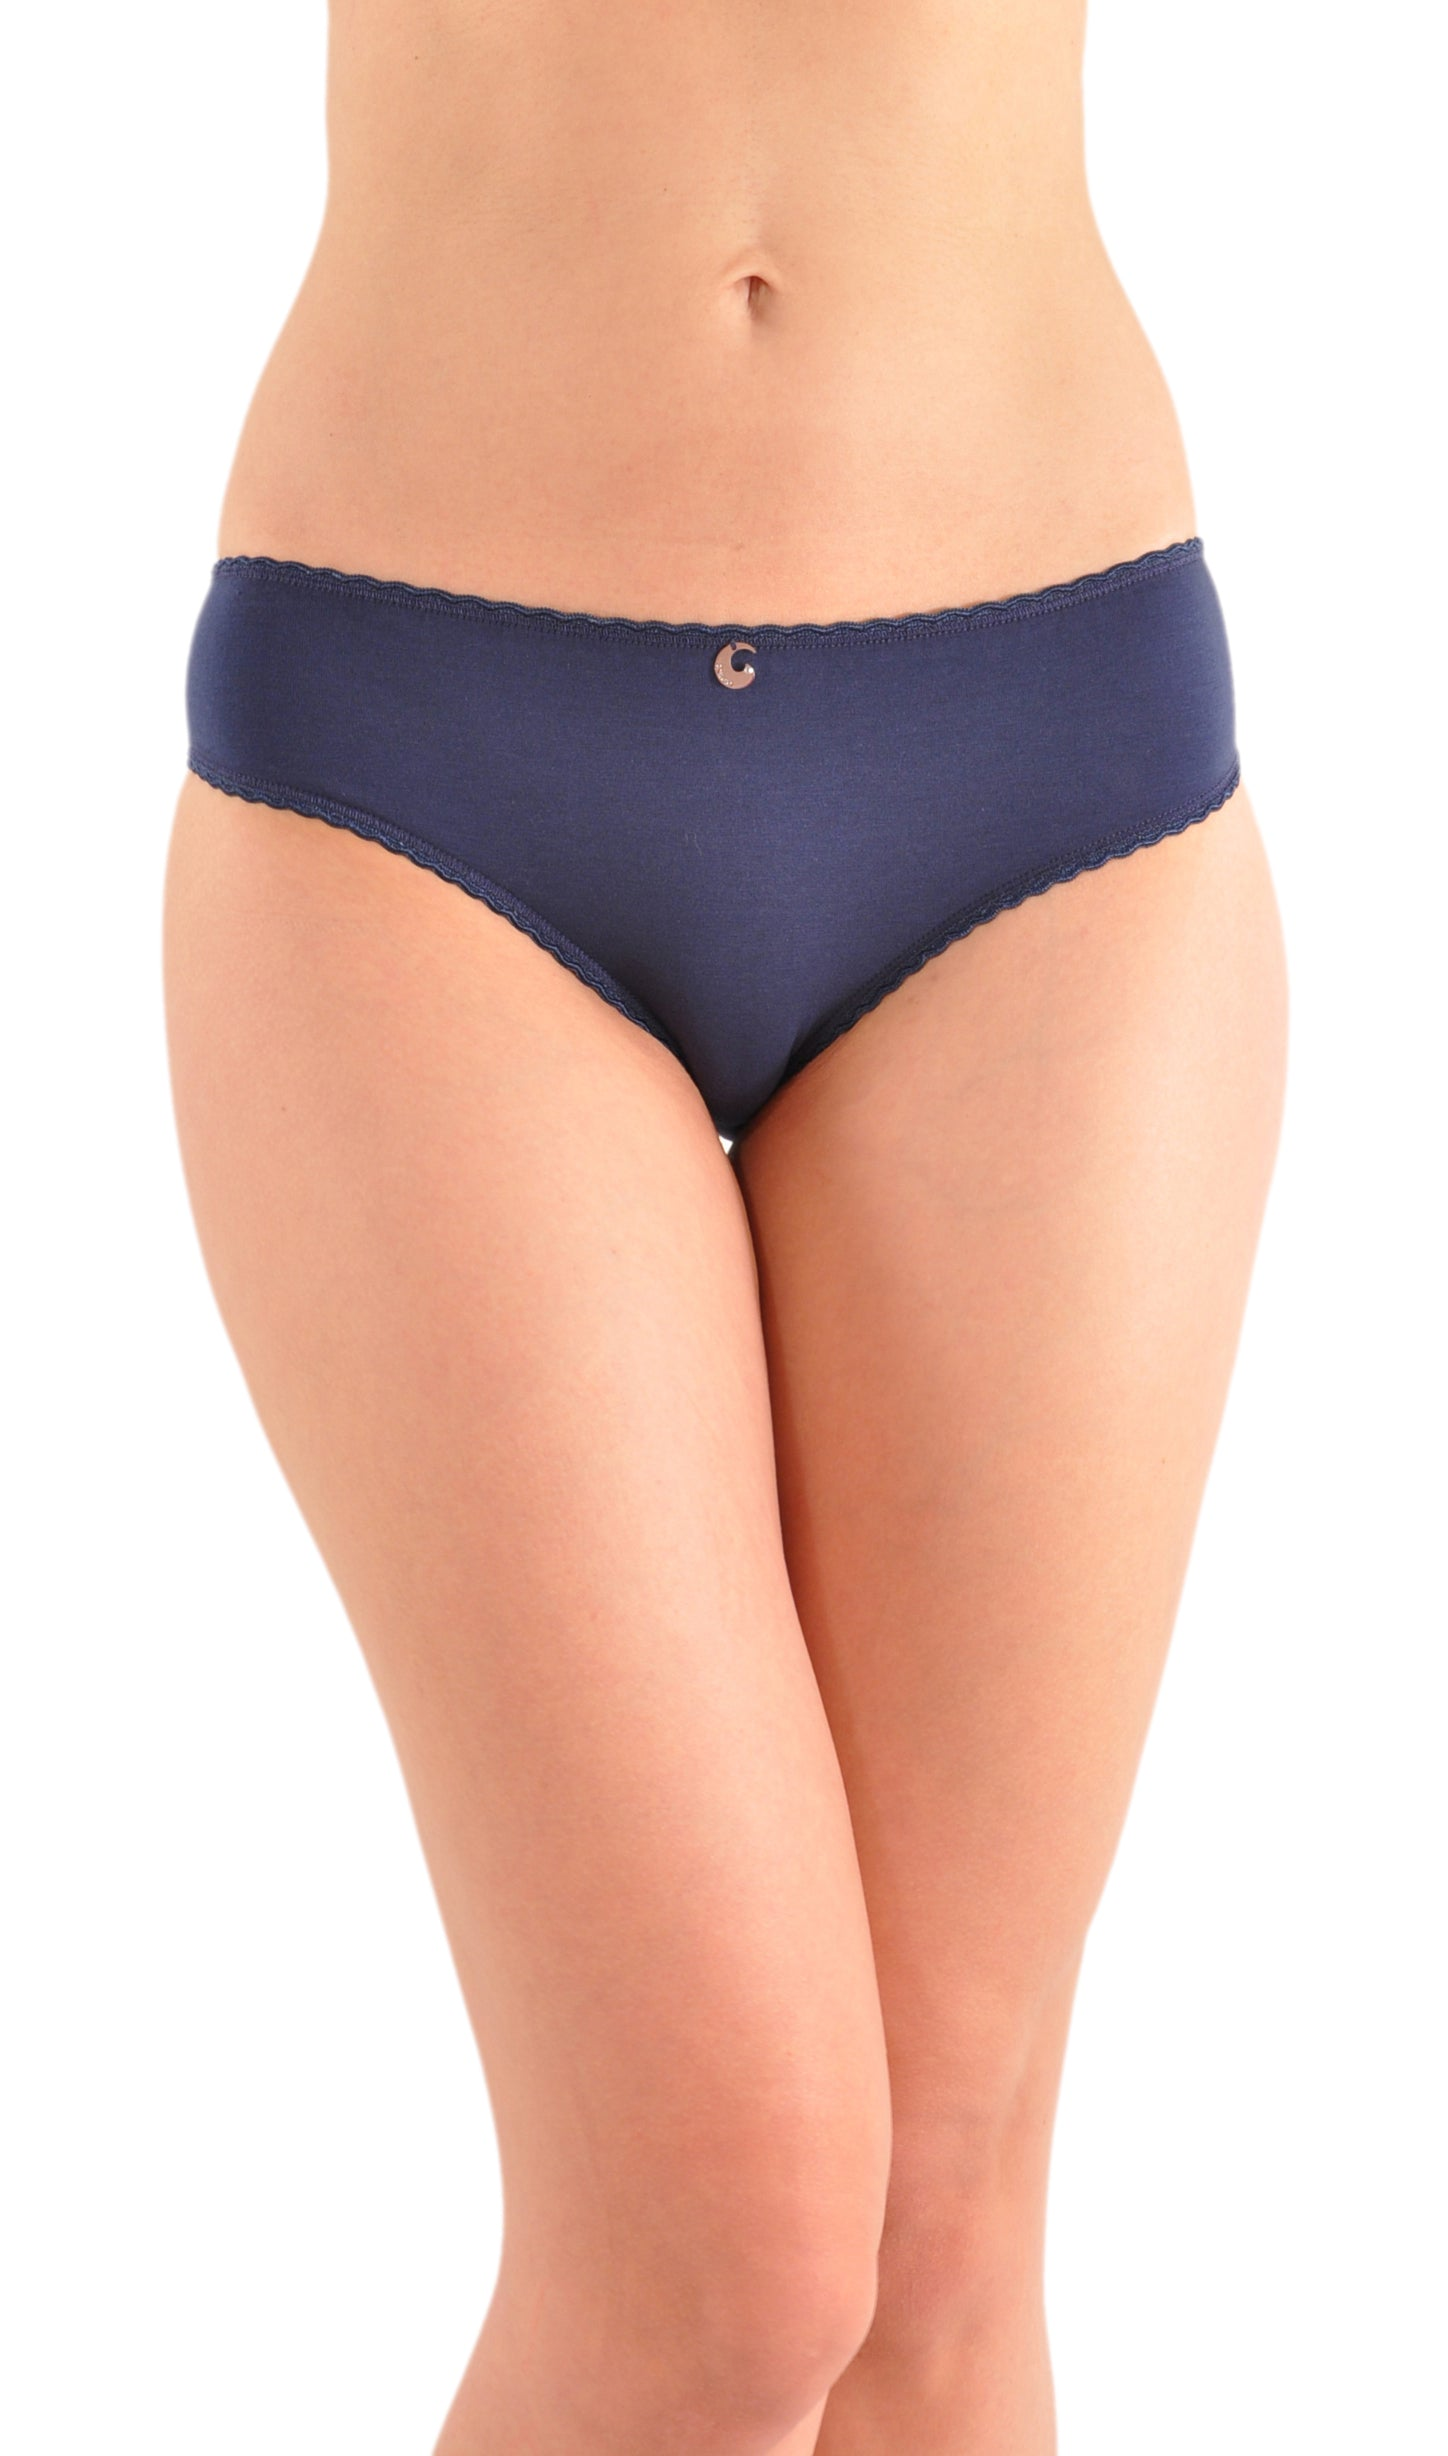 Kabbaz-Kelly Pure Elegance Luxury Bikini Panty